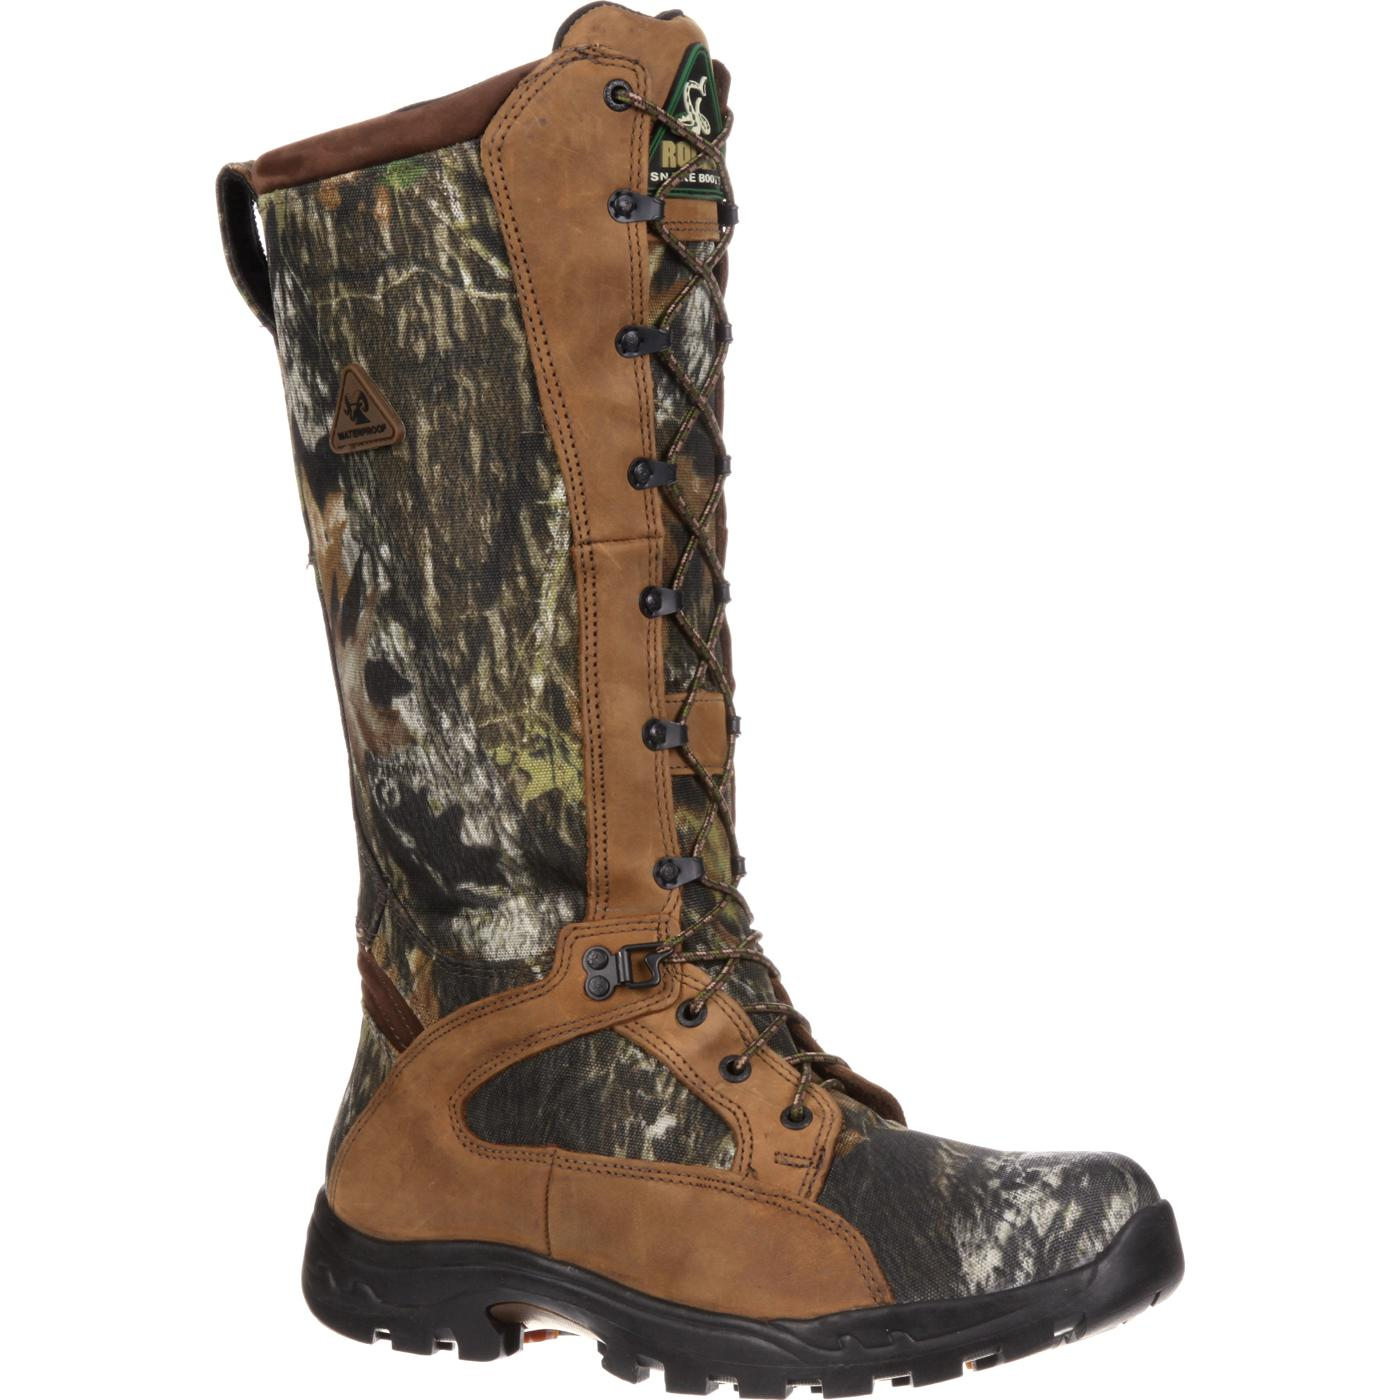 Rocky Snake Boots Hunting